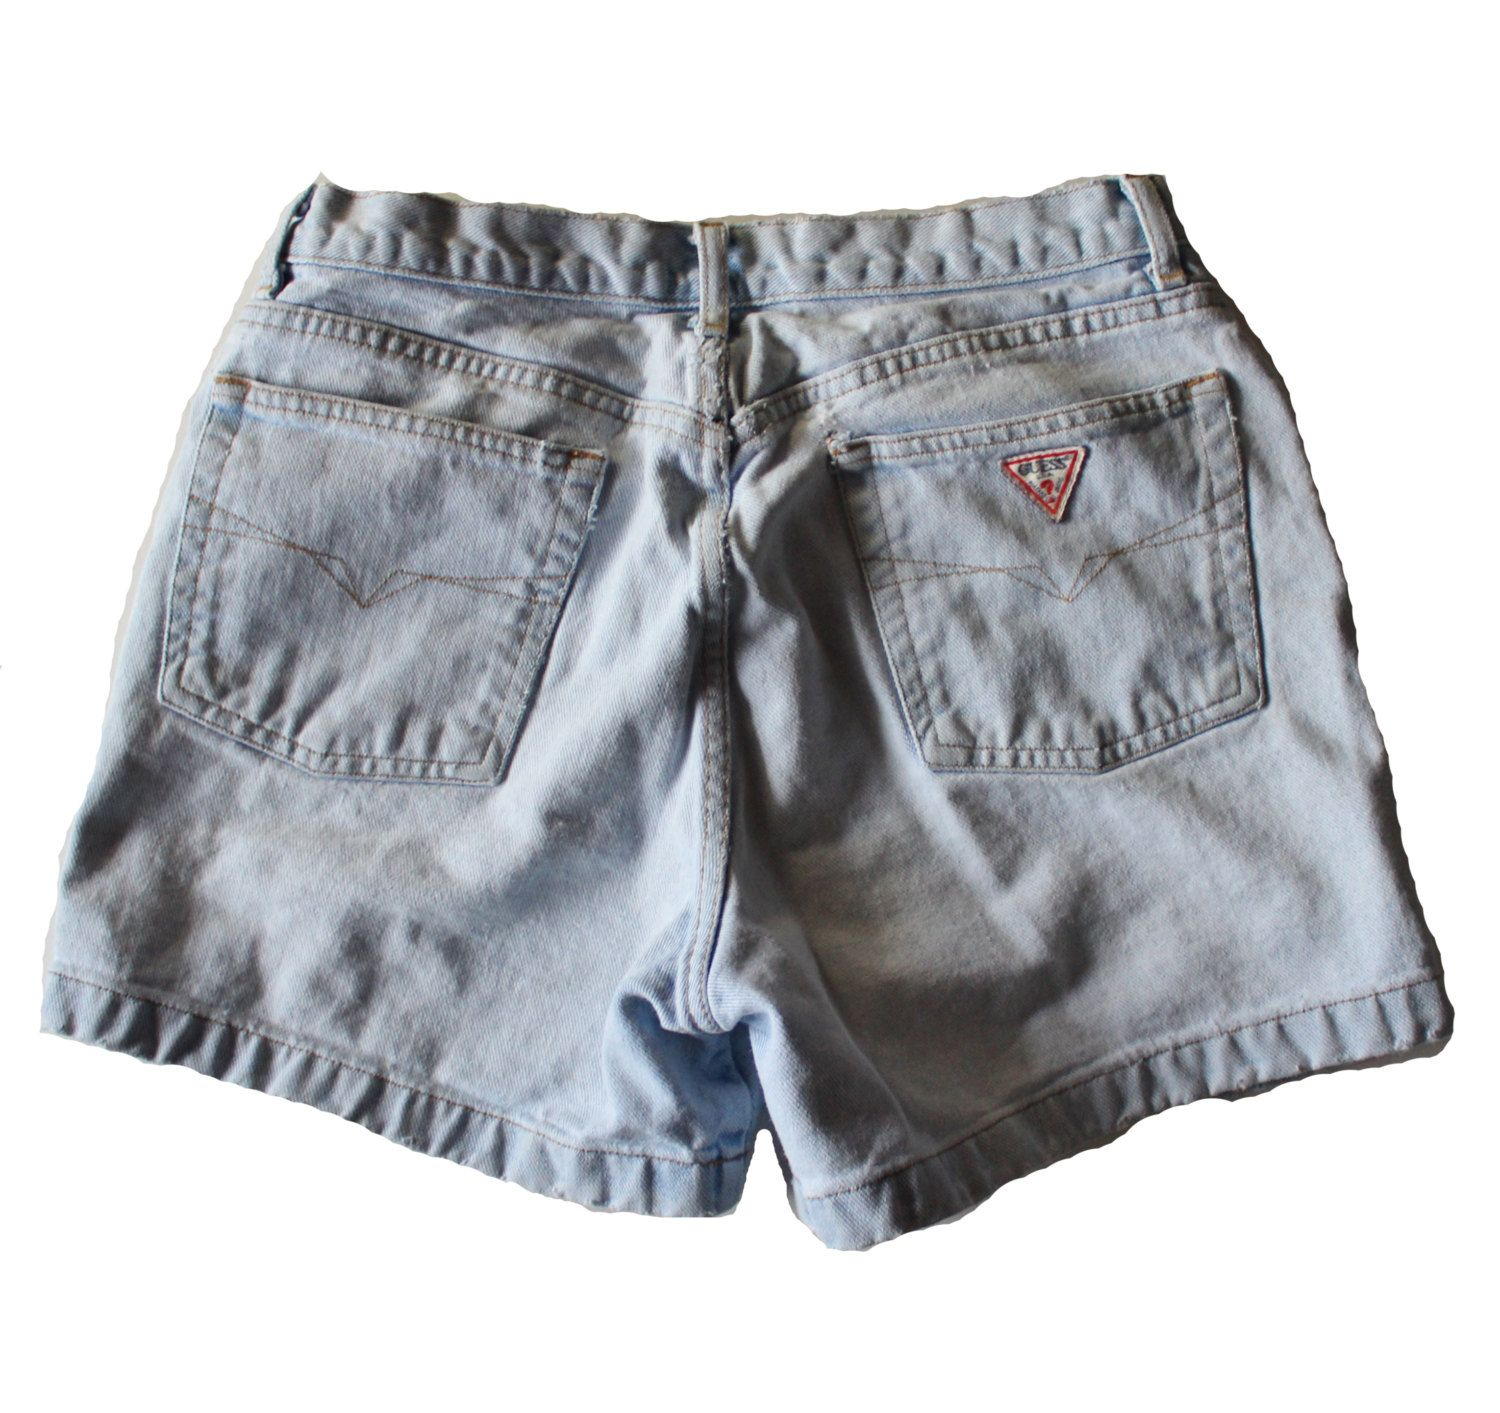 Vintage 90s GUESS Worn Out Denim Shorts Women M 31 - Mid Rise by bluebutterflyvintage on Etsy